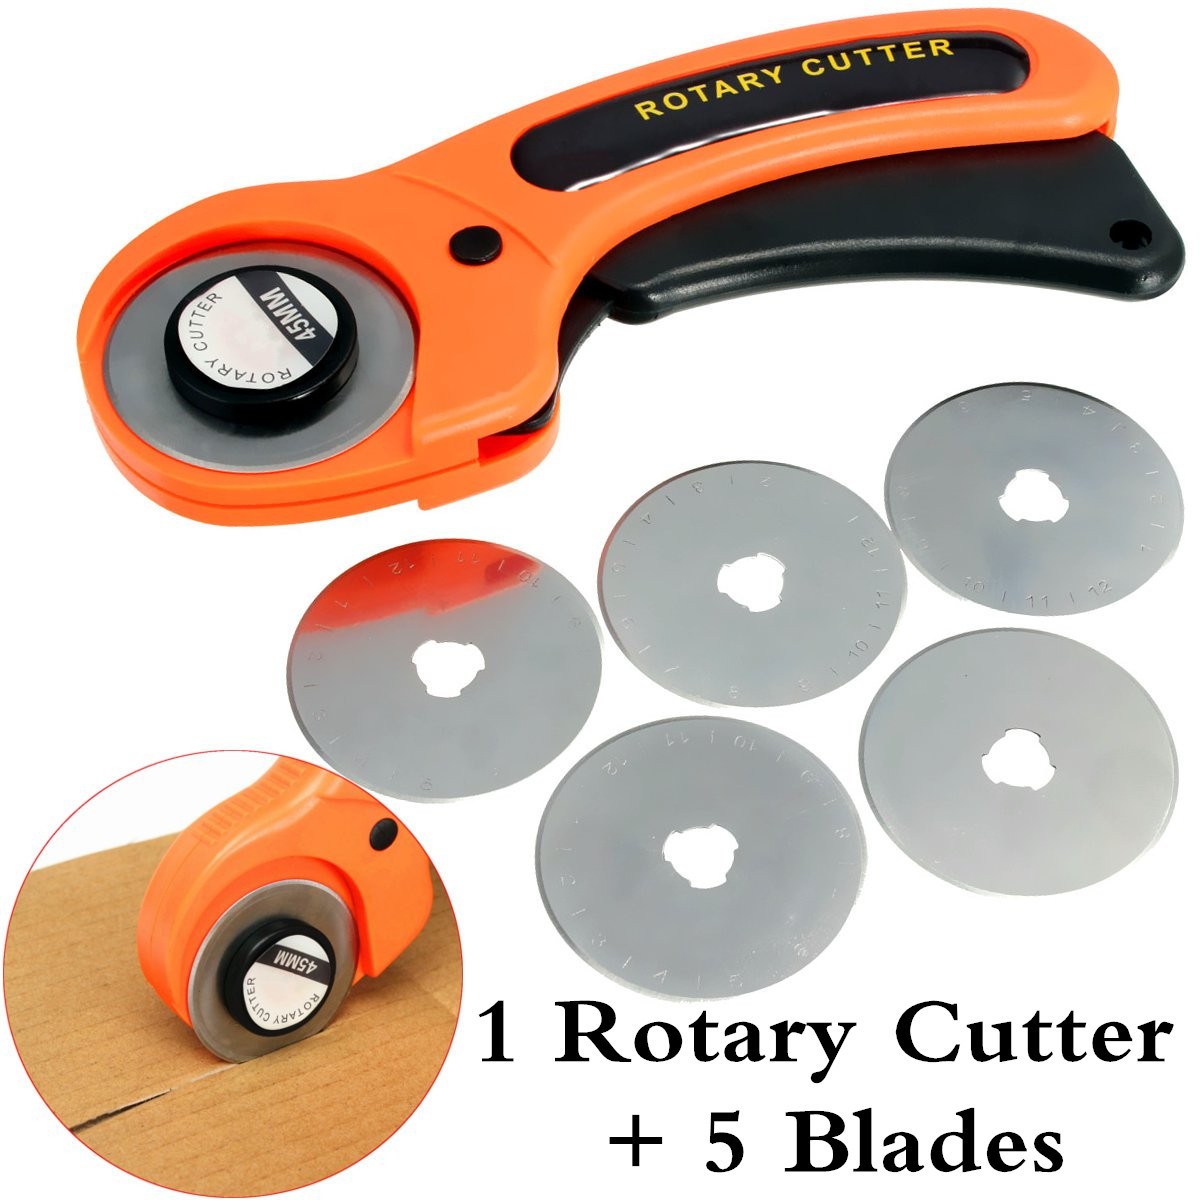 45mm Rotary Cutter Blade Sewing Quilting Fabric Cutting Craft Patchwork Tool +5 Blades